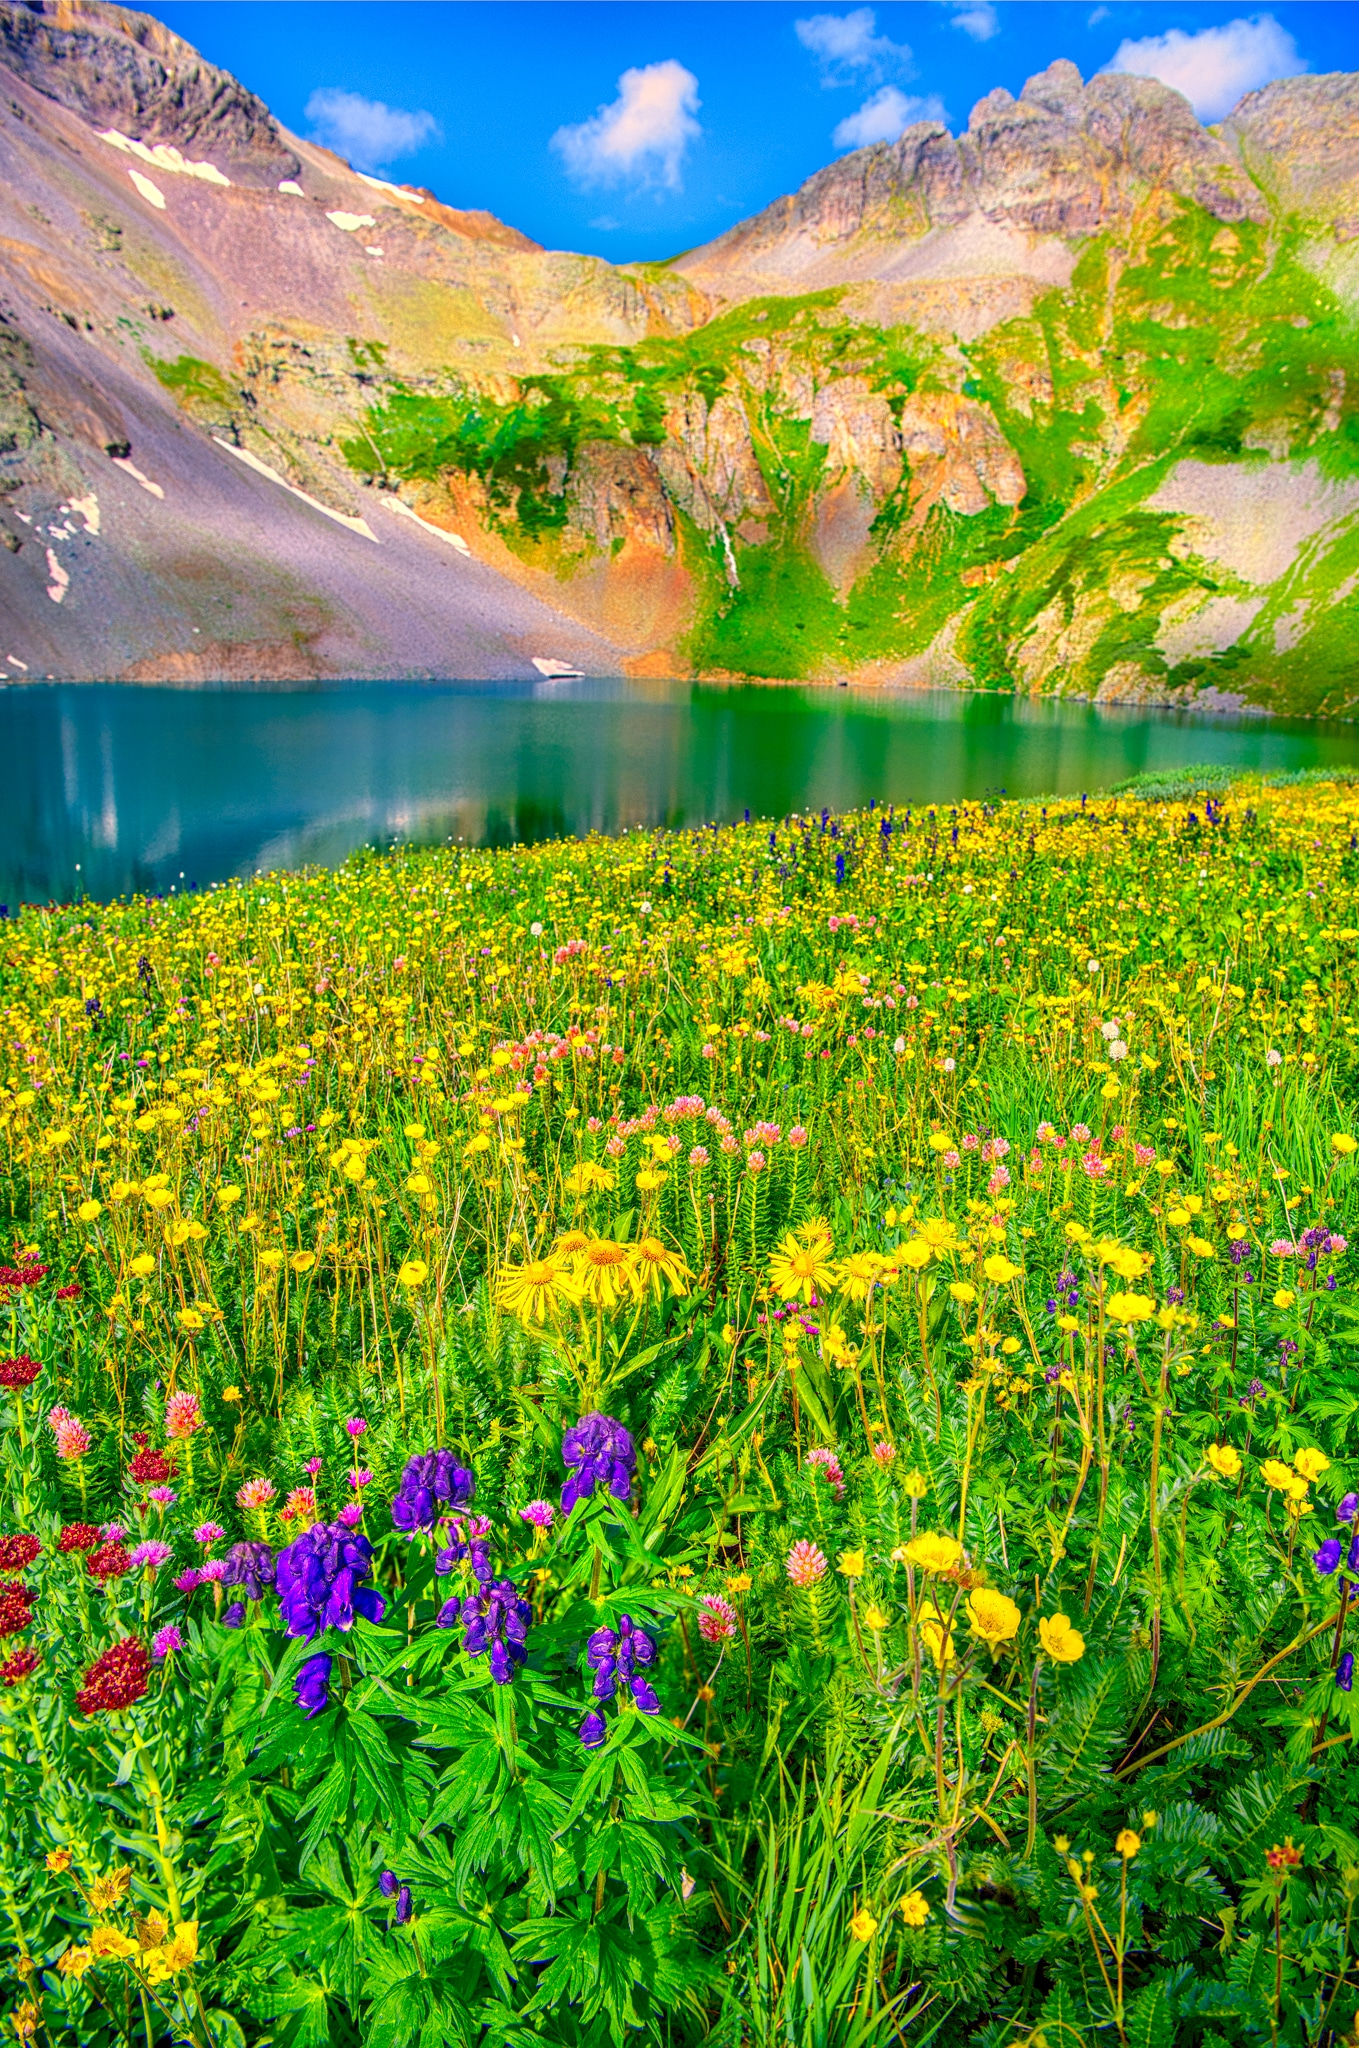 Monkshood, Leafy Arnica, Alpine Avens, Queens Crown, Kings Crown, and Alpine Larkspur carpet the shore of Clear Lake, a hanging lake below Peak 13309 at the end of FS 815, located in the mountains between Ouray and Silverton, Colorado.